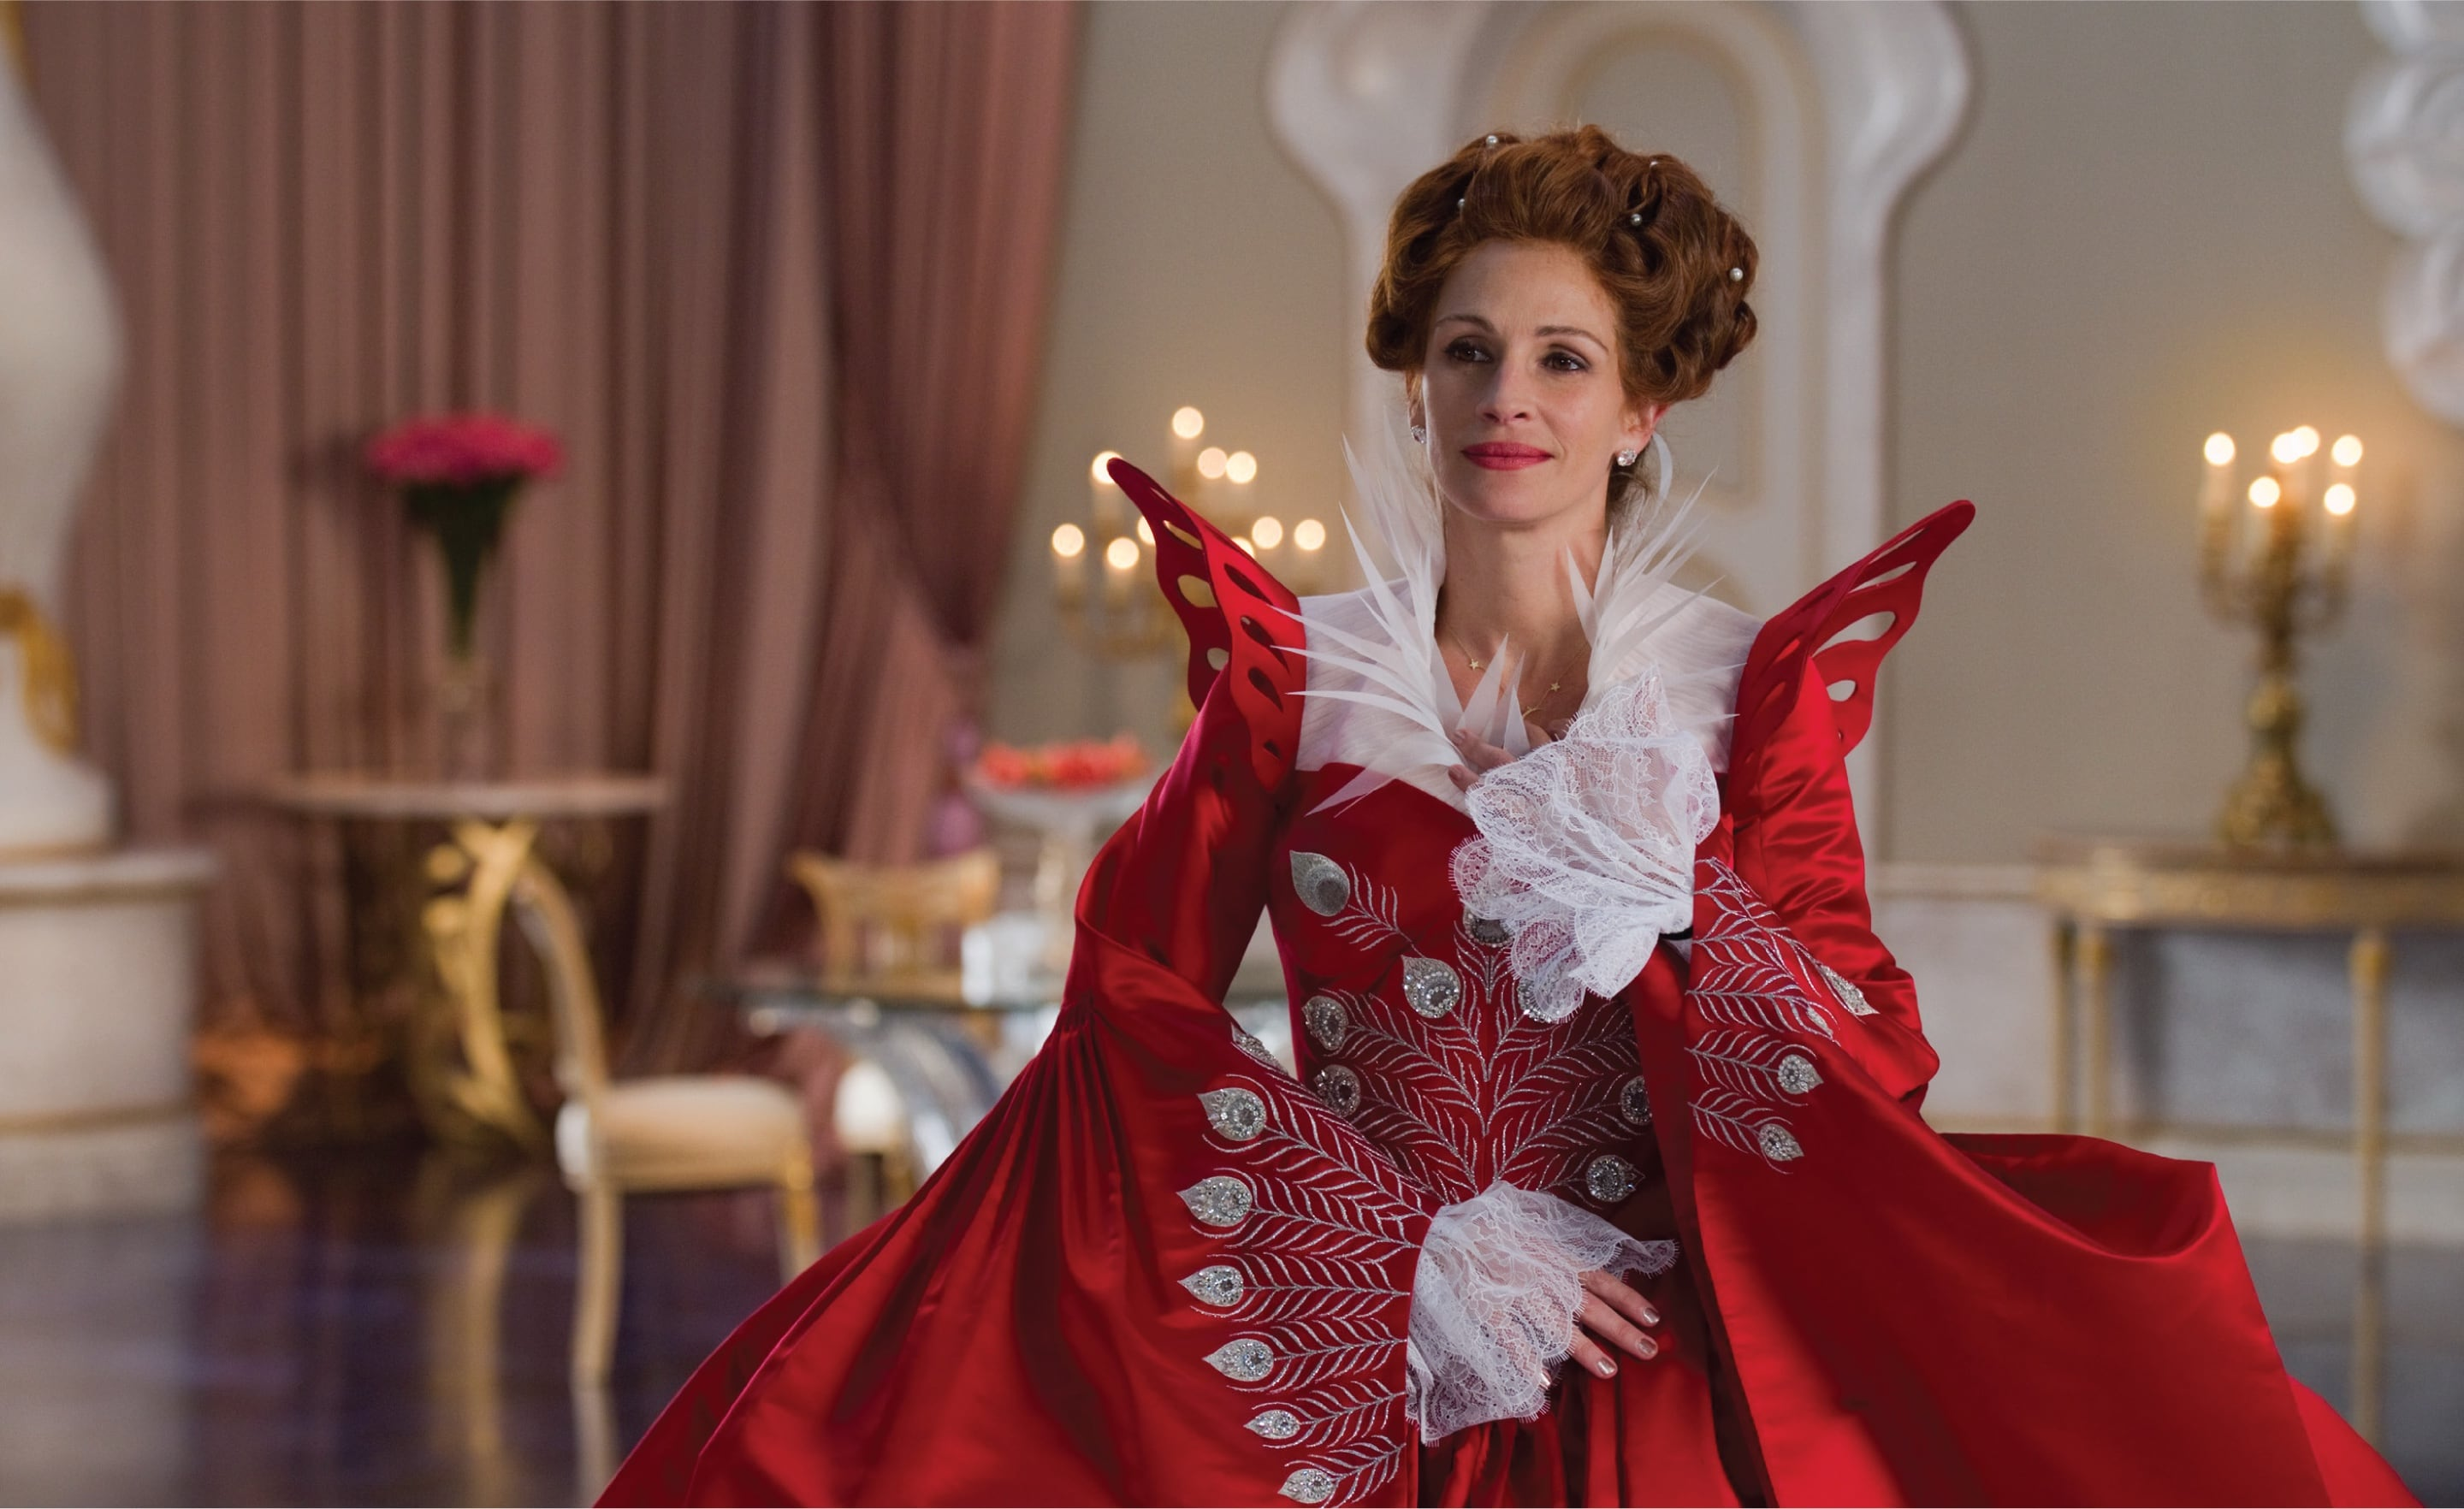 Julia Roberts in Mirror Mirror wearing large red and white gown